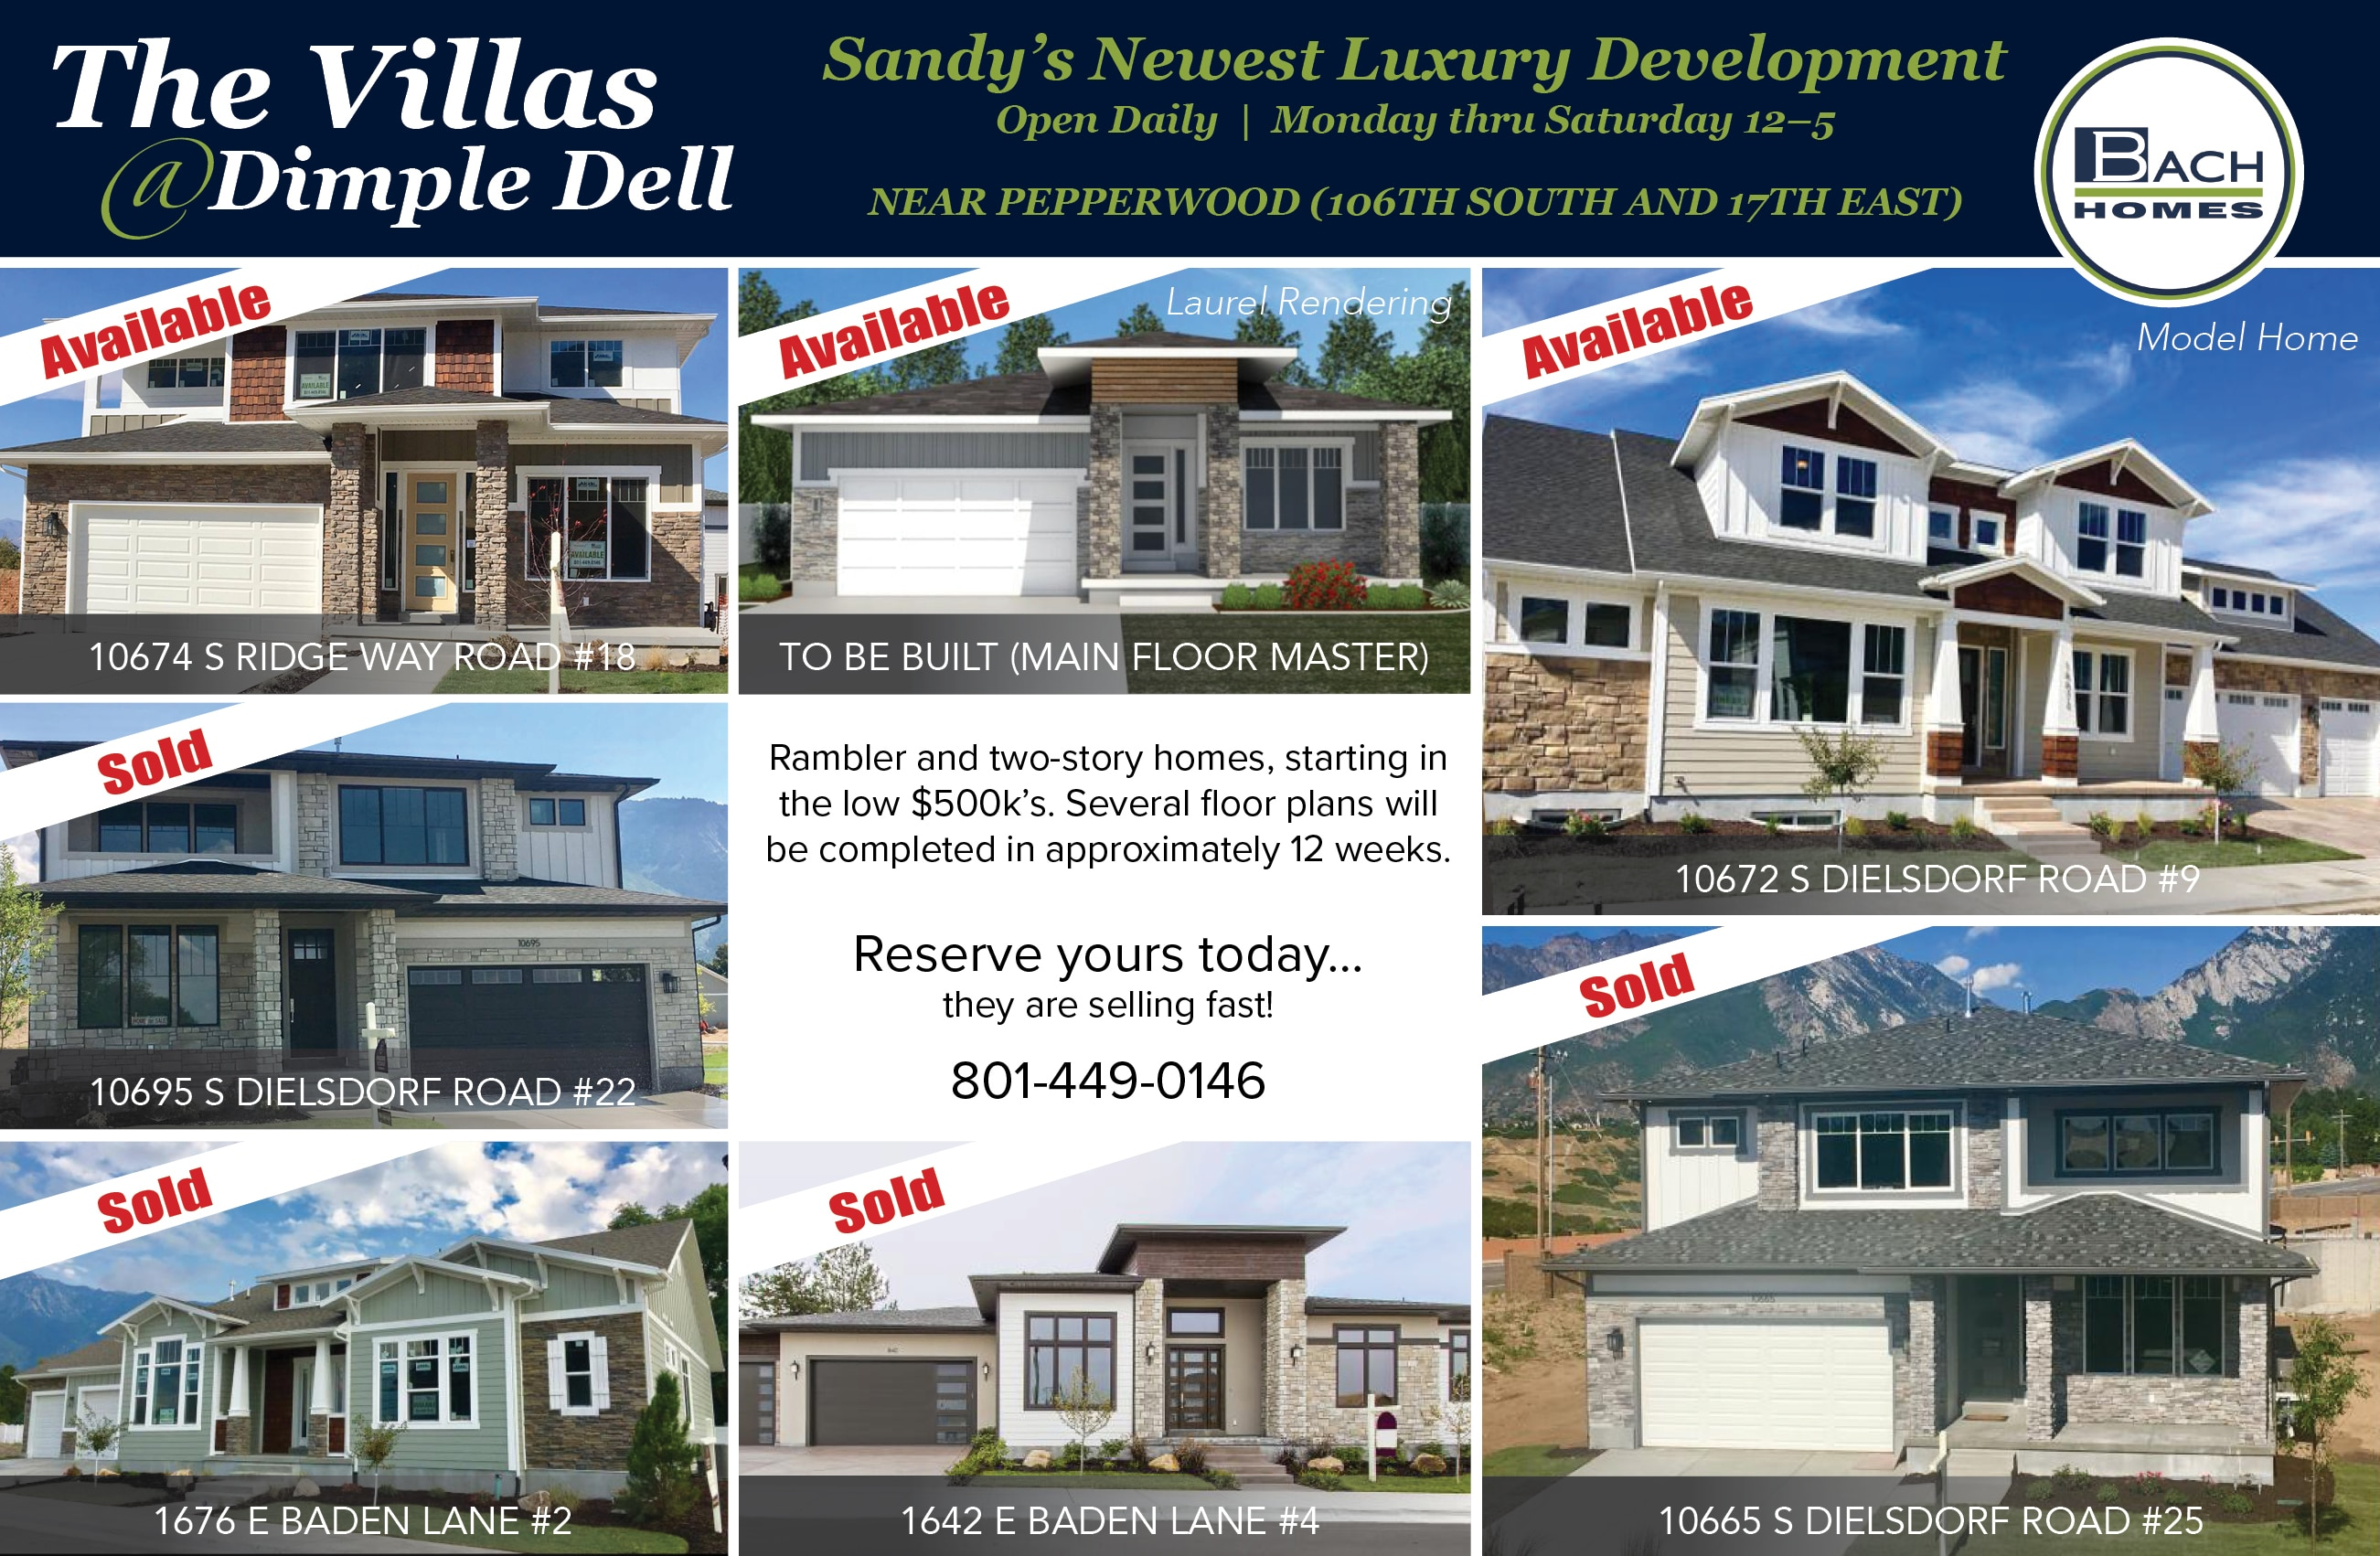 NEW LUXURY HOMES FOR SALE IN SANDY